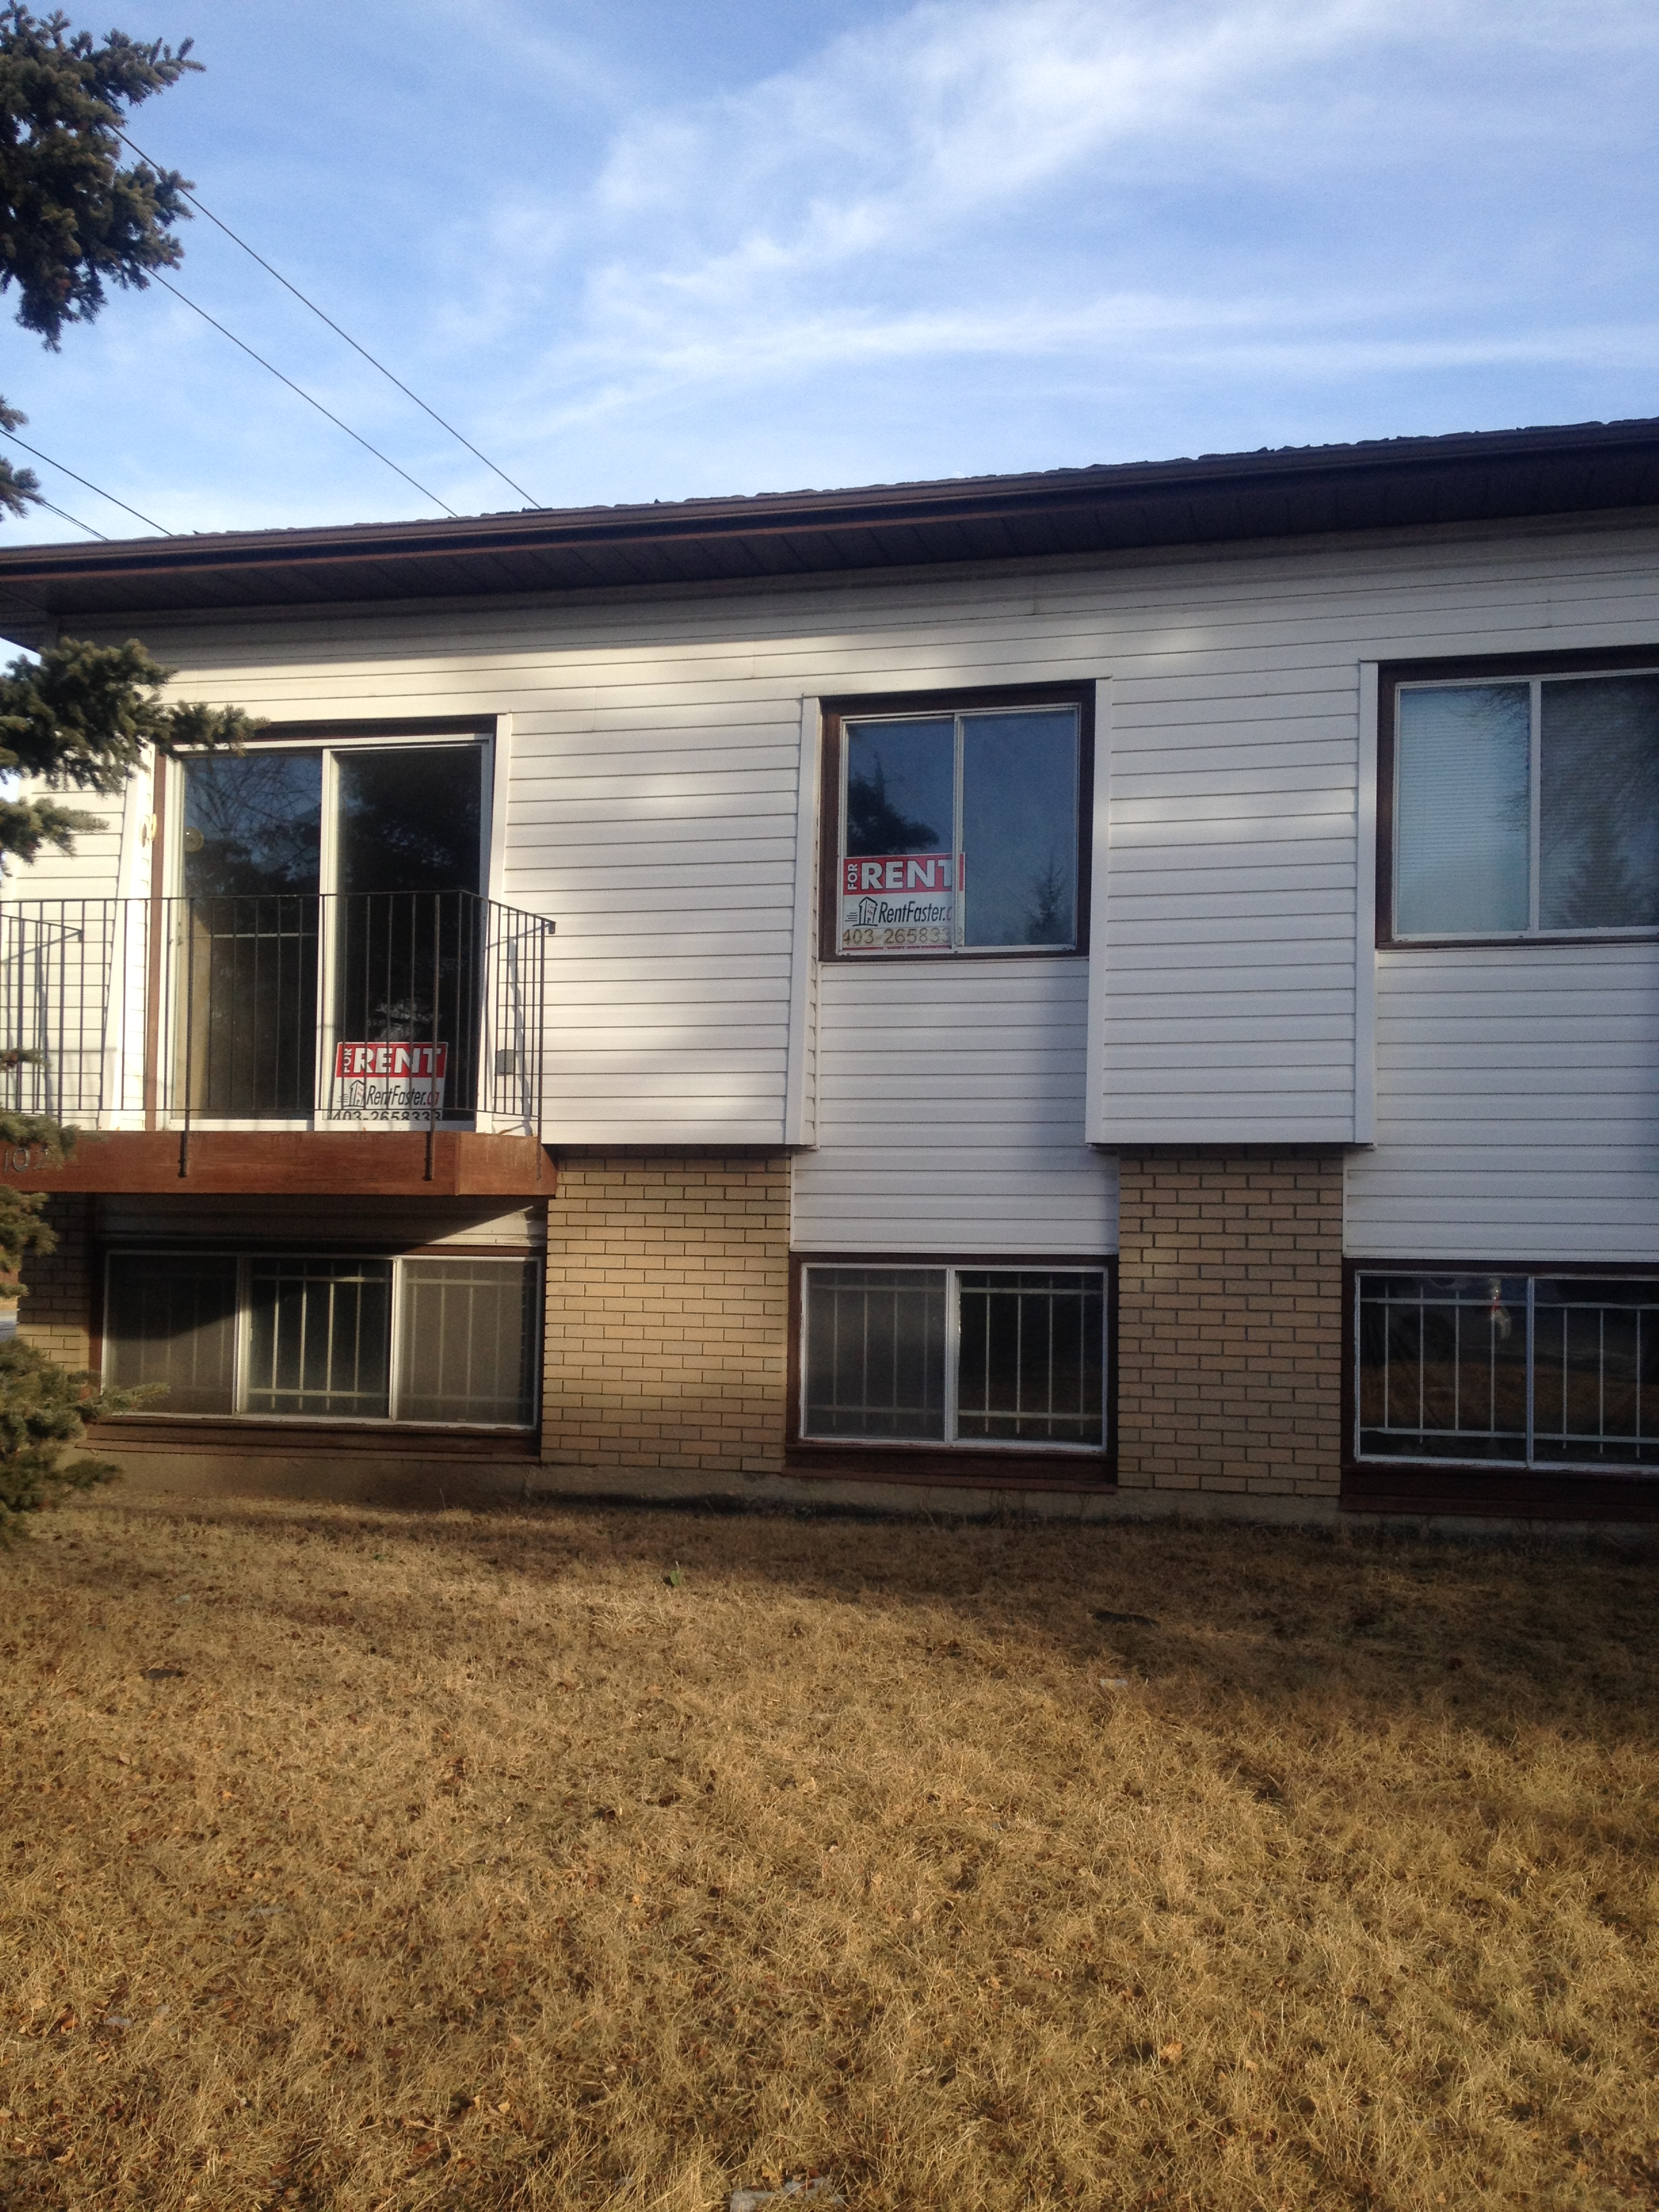 LOCATION ! 2 BEDROOMS WELL MAINTAINED DUPLEX IN SW